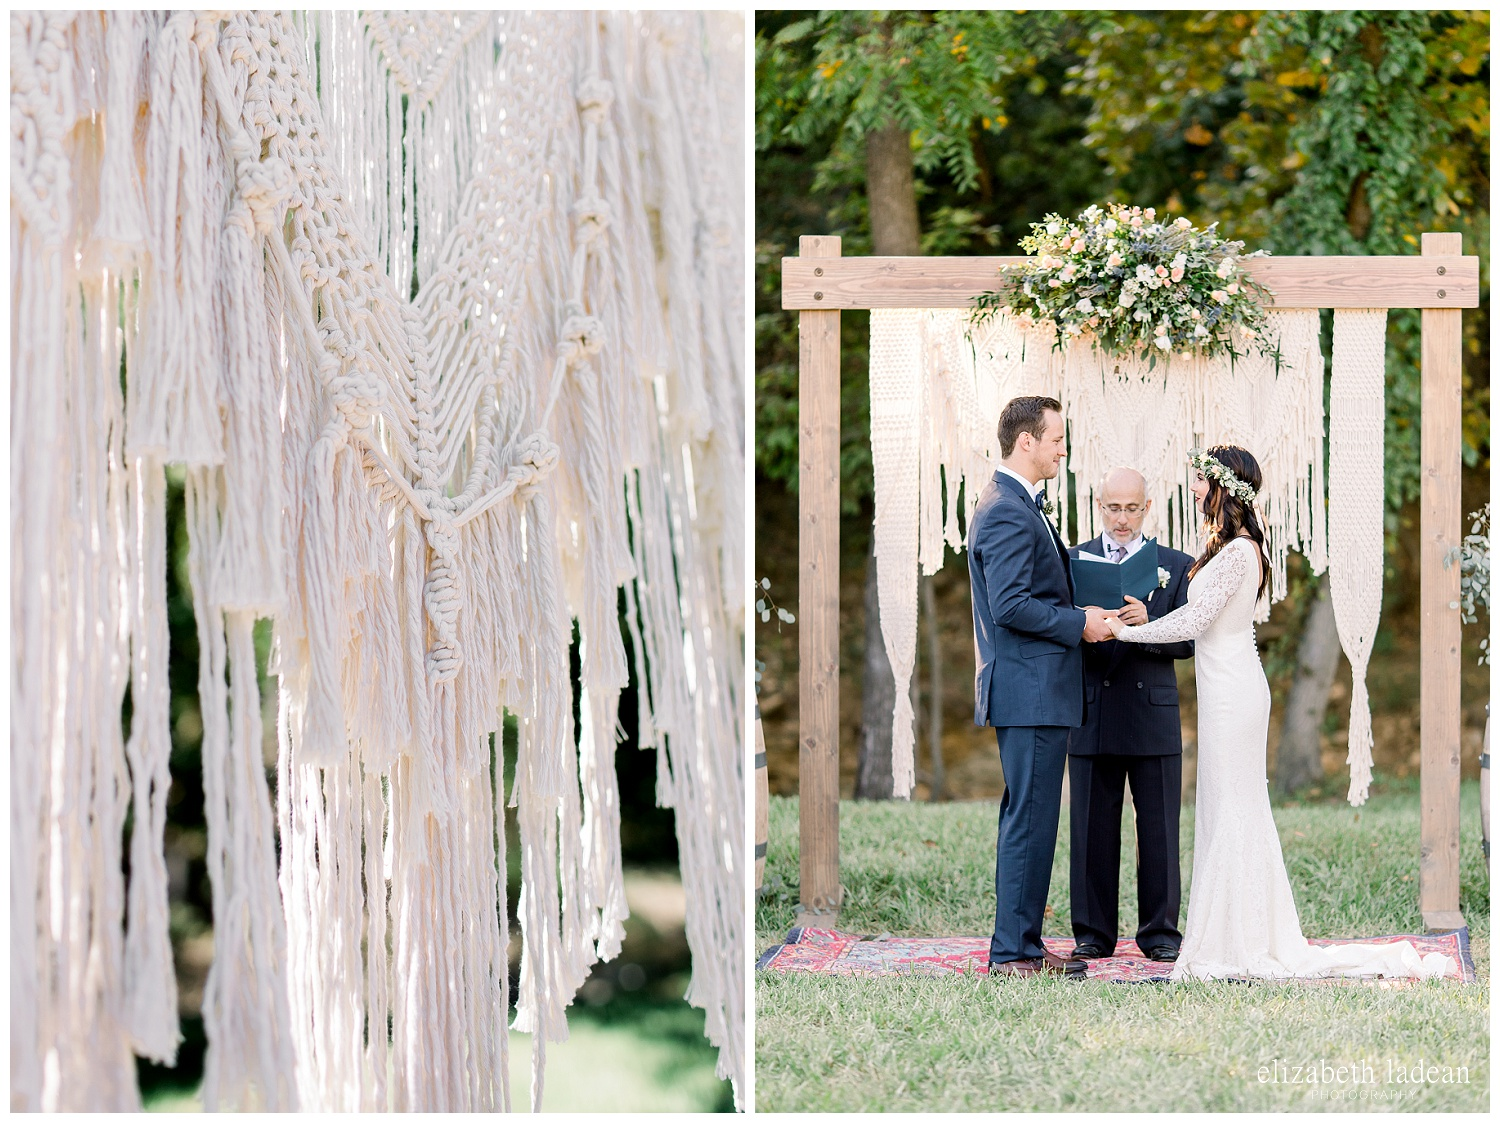 Willow-Creek-Blush-and-Blues-Outdoor-Wedding-Photography-S+Z2018-elizabeth-ladean-photography-photo_0577.jpg